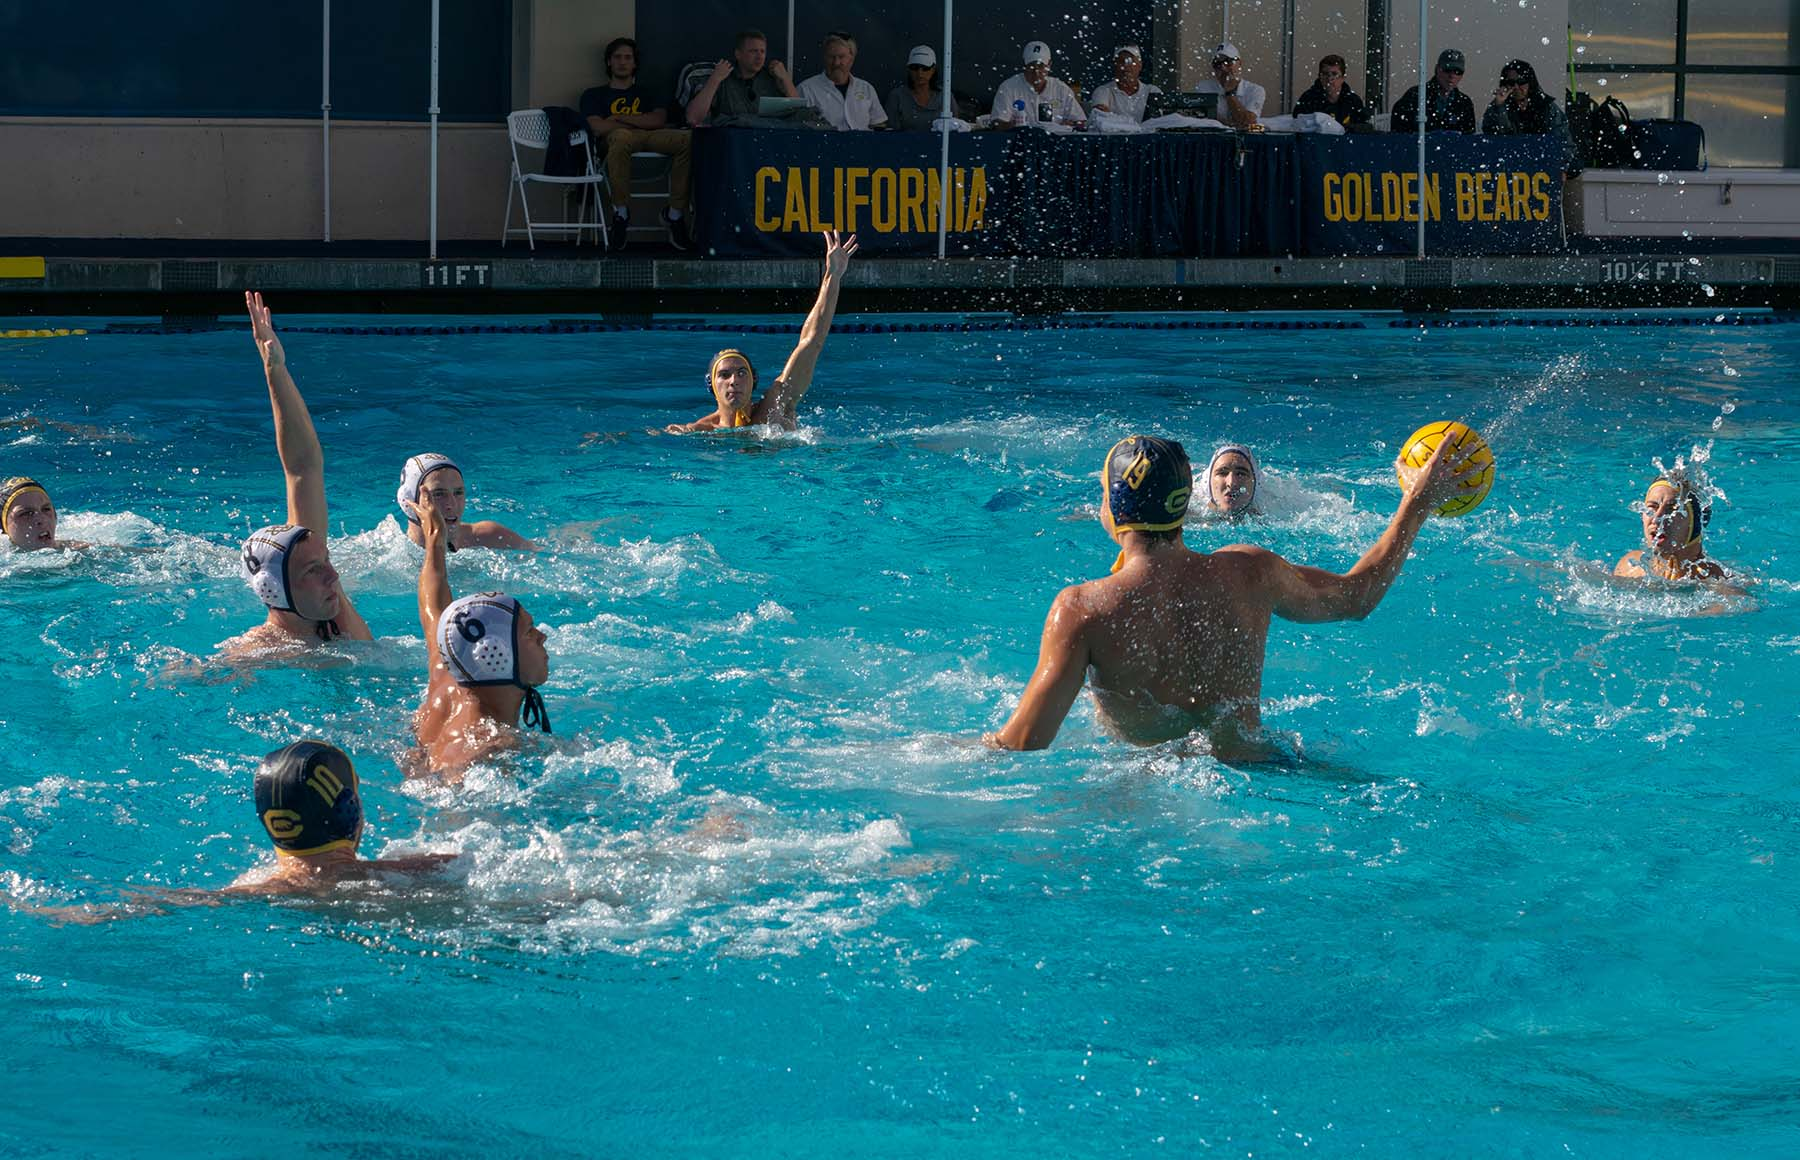 Photo of men's water polo match